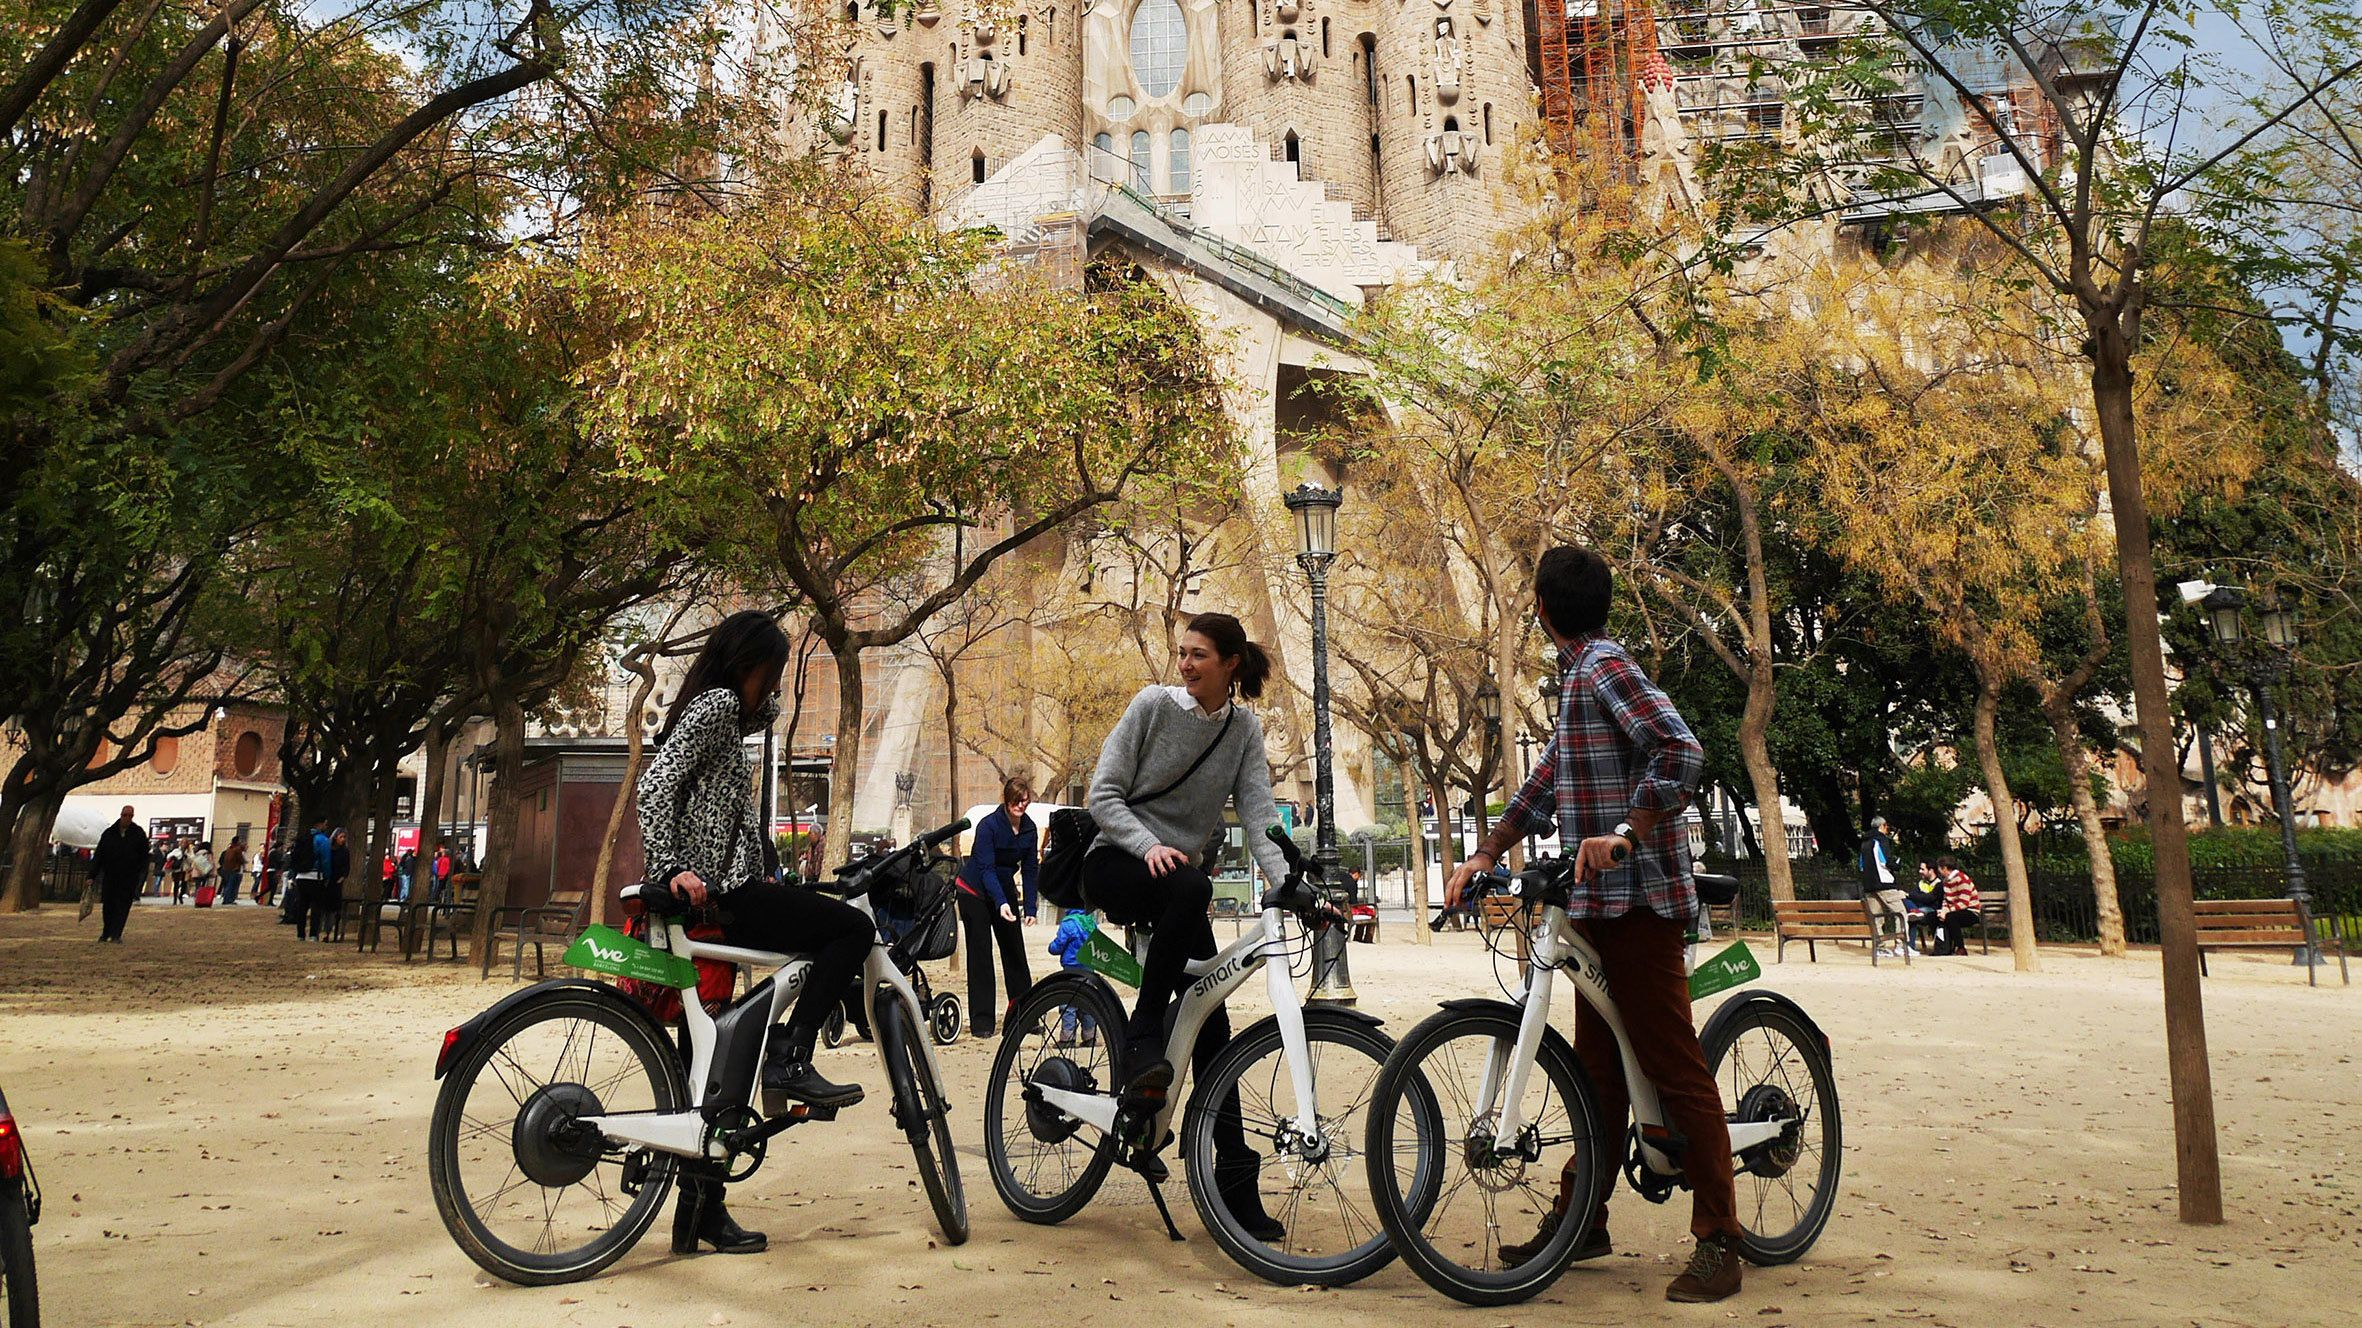 Group on ebikes at La Sagrada Familia in Barcelona